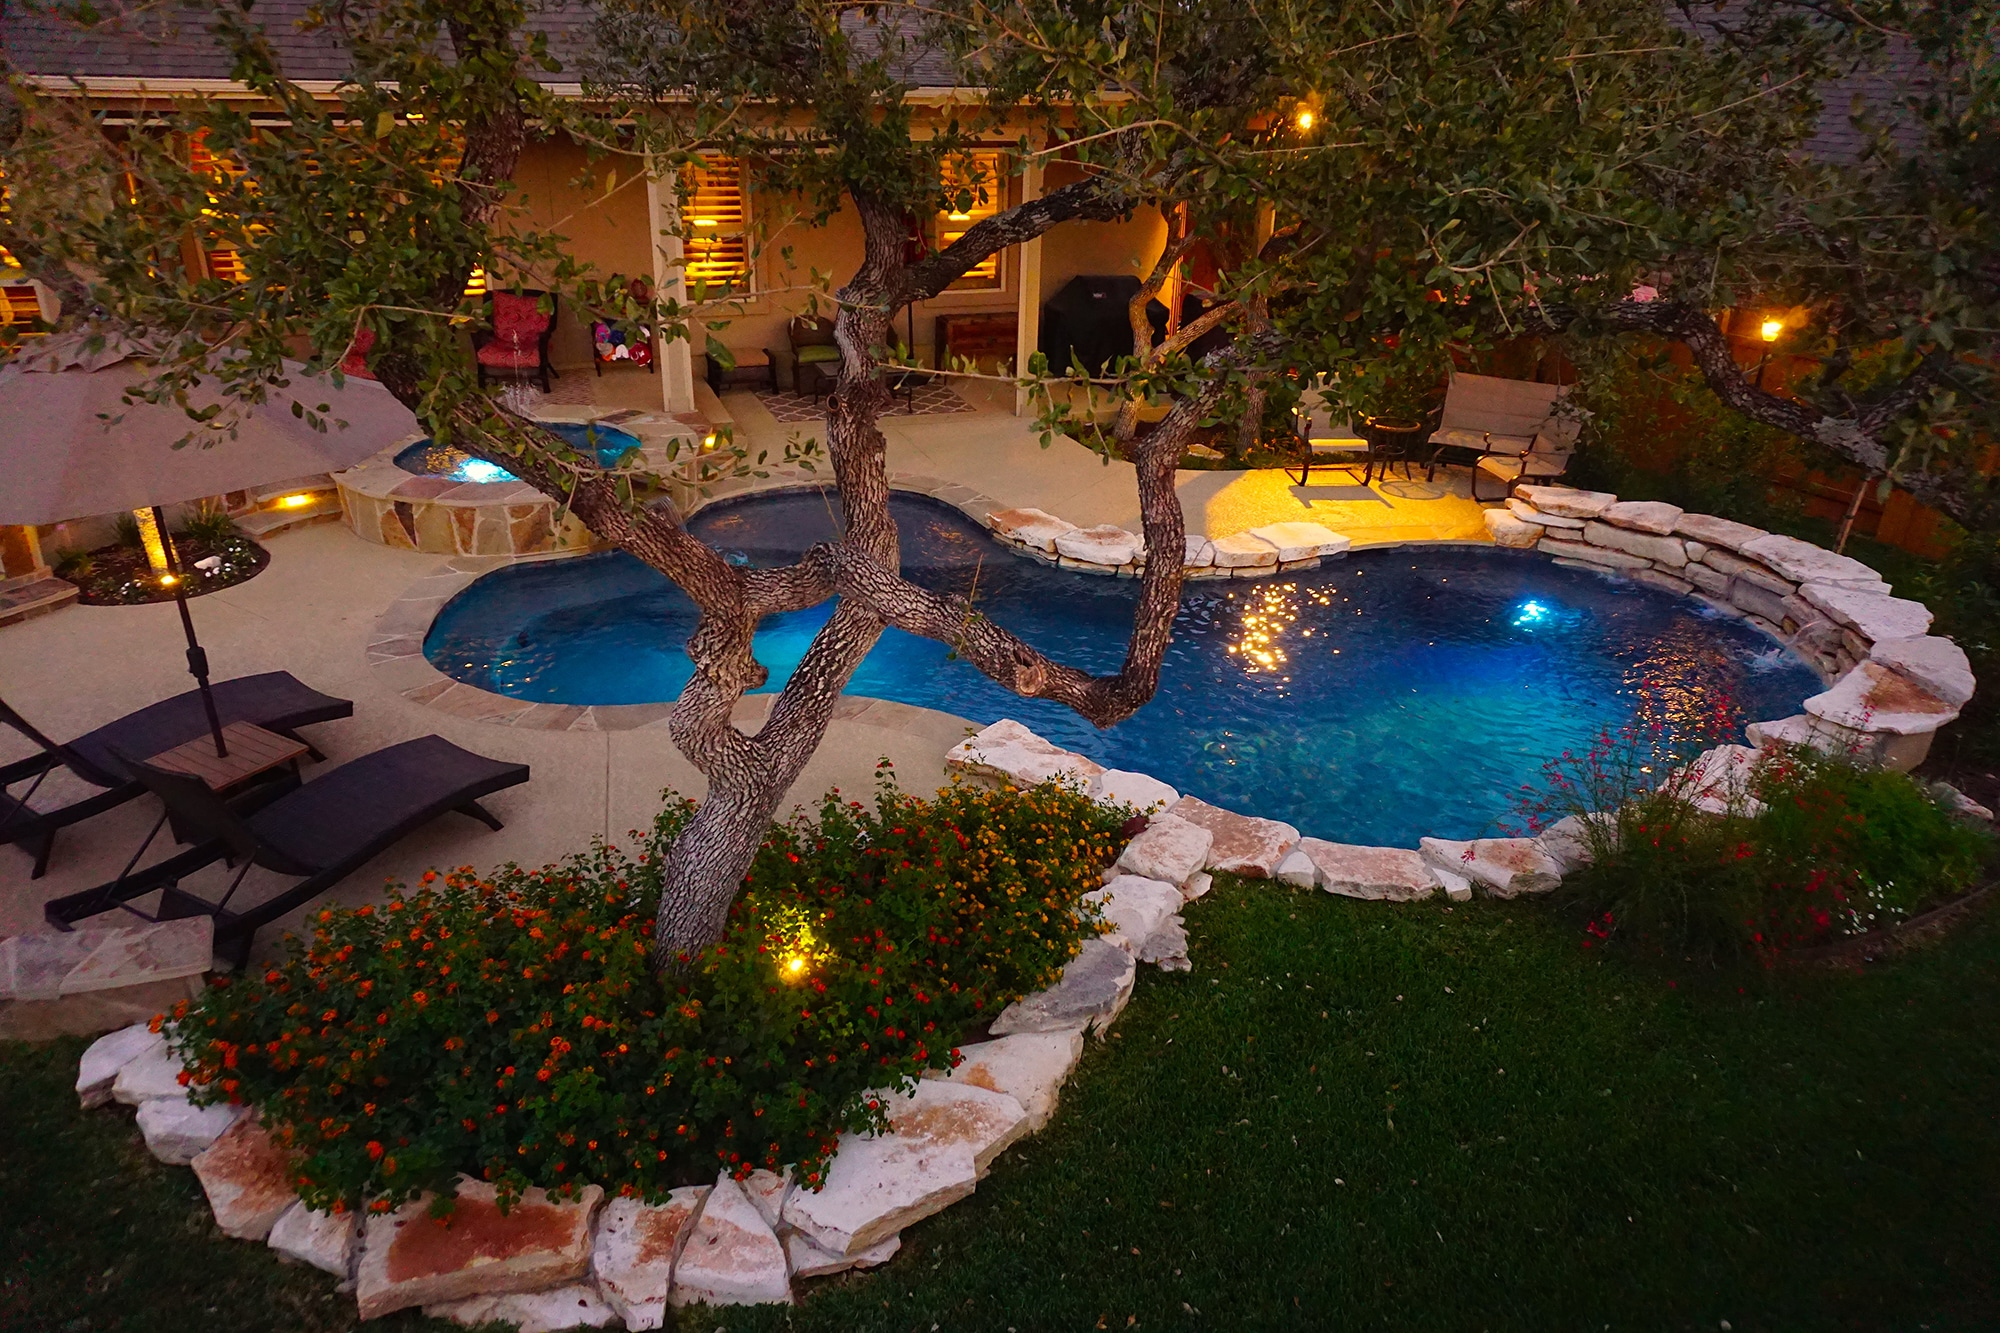 1 Round Rock Swimming Pool Spa Waterfall Covered Patio